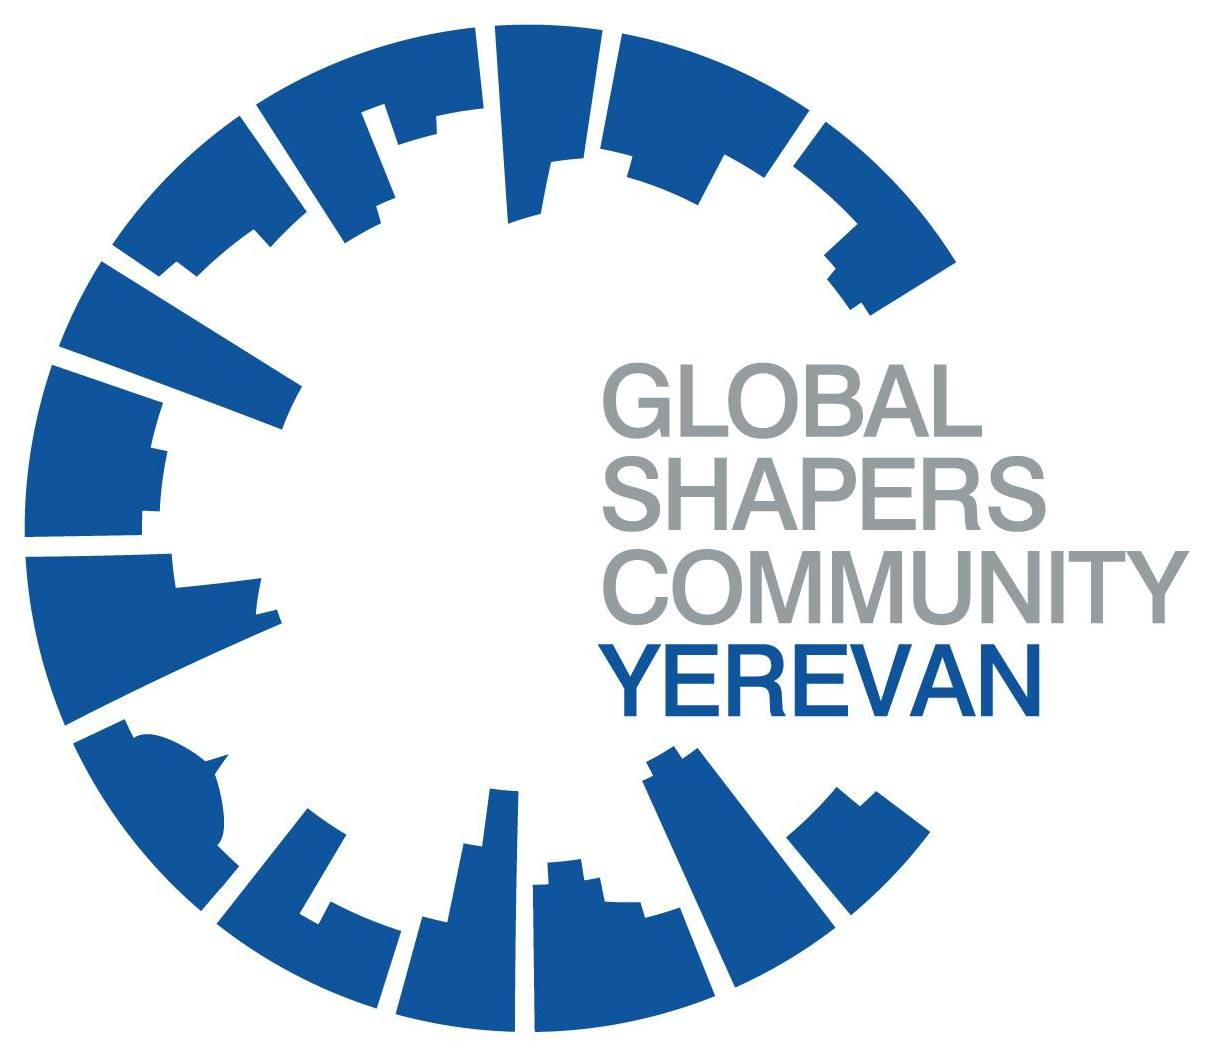 Global Shapers Yerevan Hub  is part of the Global Shapers Community and was established in 2012. Born out of the World Economic Forum, the Global Shapers Community is a network of inspiring young people under the age of 30 working together to address local, regional and global challenges.